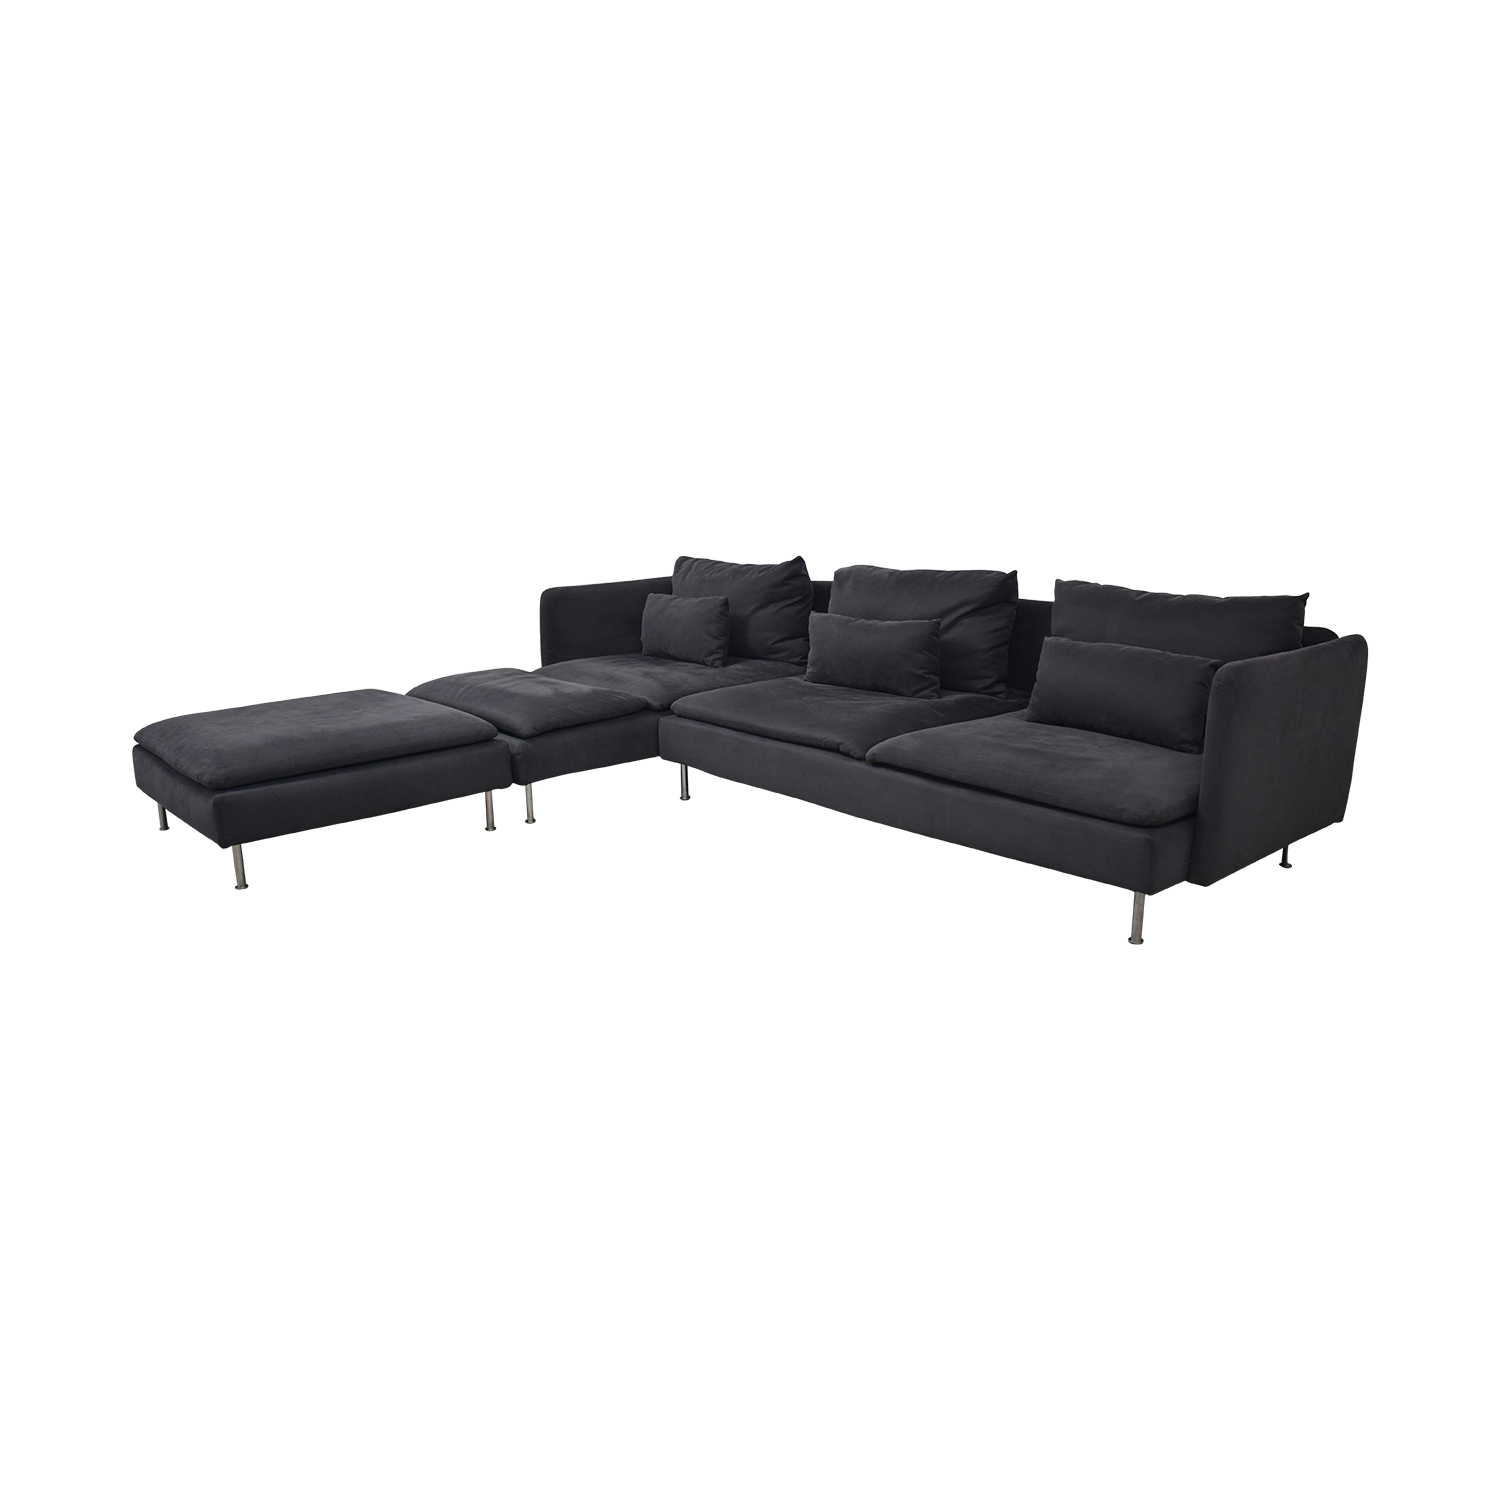 IKEA IKEA Charcoal Long Chaise Sectional coupon